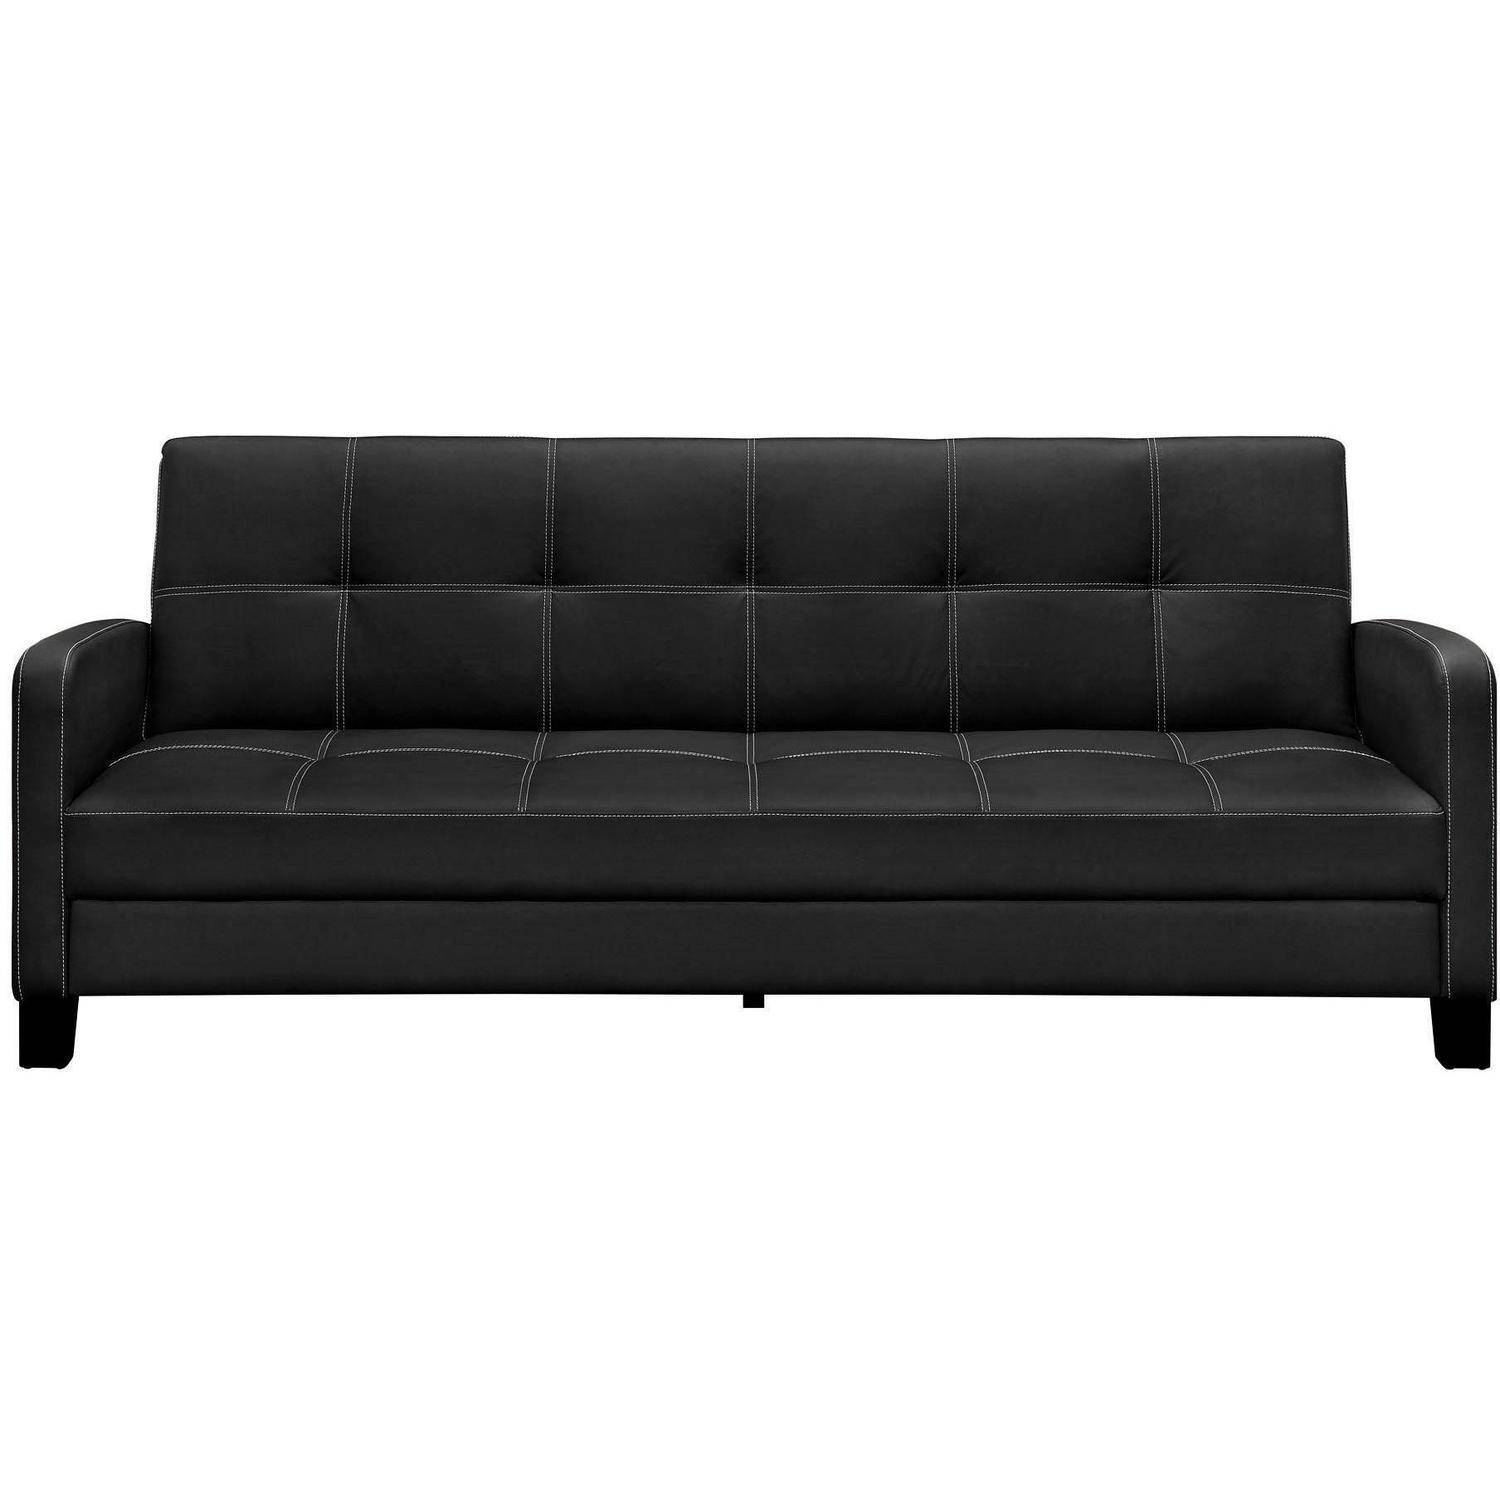 Beau DHP Delaney Futon Couch Sofa Sleeper, Multiple Colors   Walmart.com